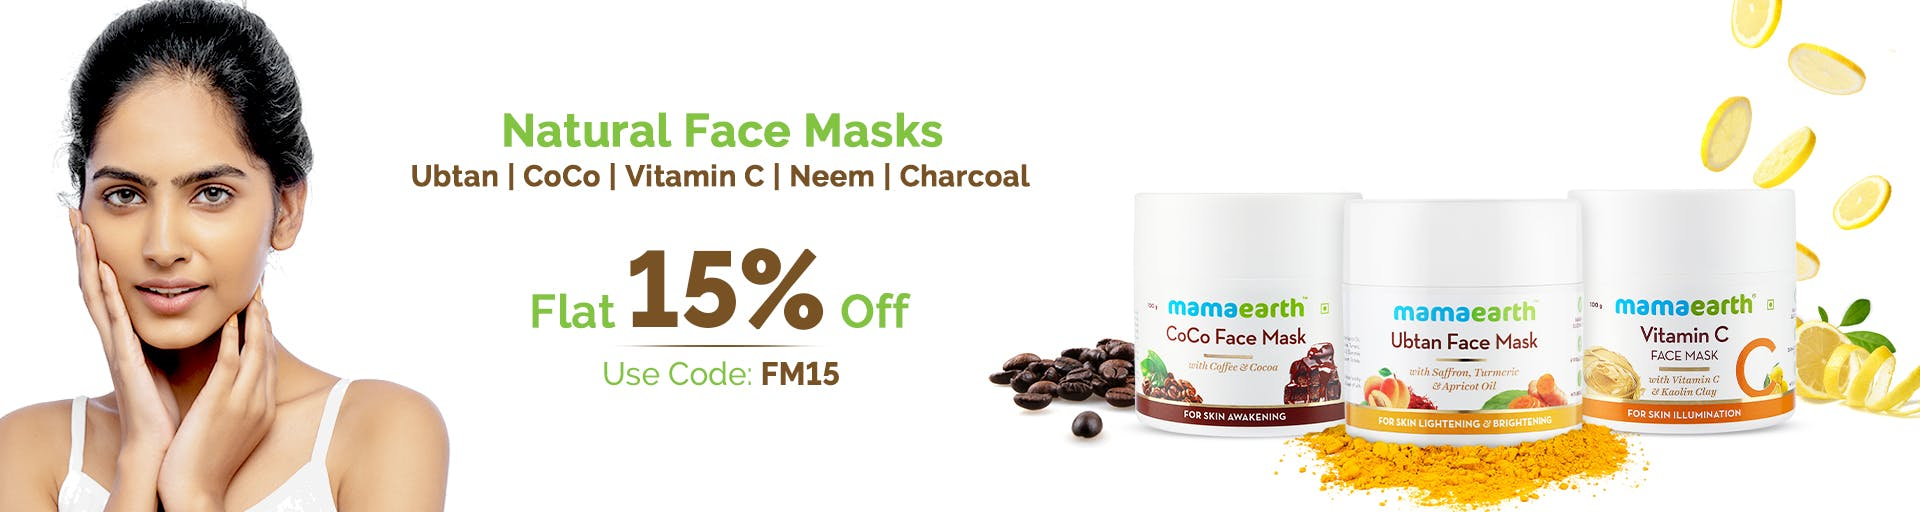 mamaearth.in - Get Flat 15% Discount on MamaEarth FaceMask